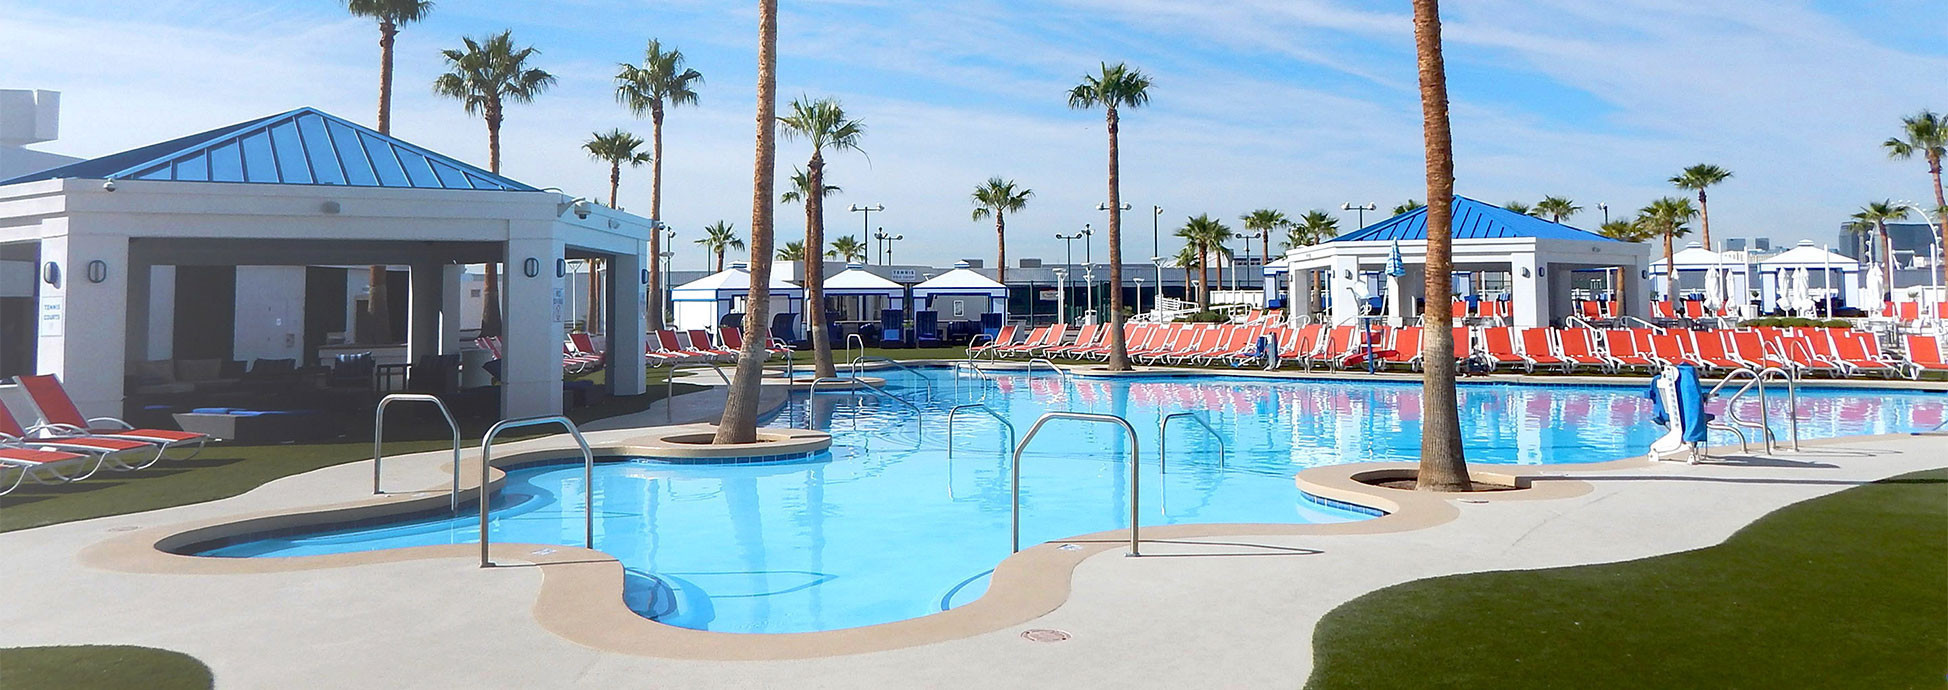 Amenities at our Las Vegas Hotel and Casino | Large Outdoor Pool